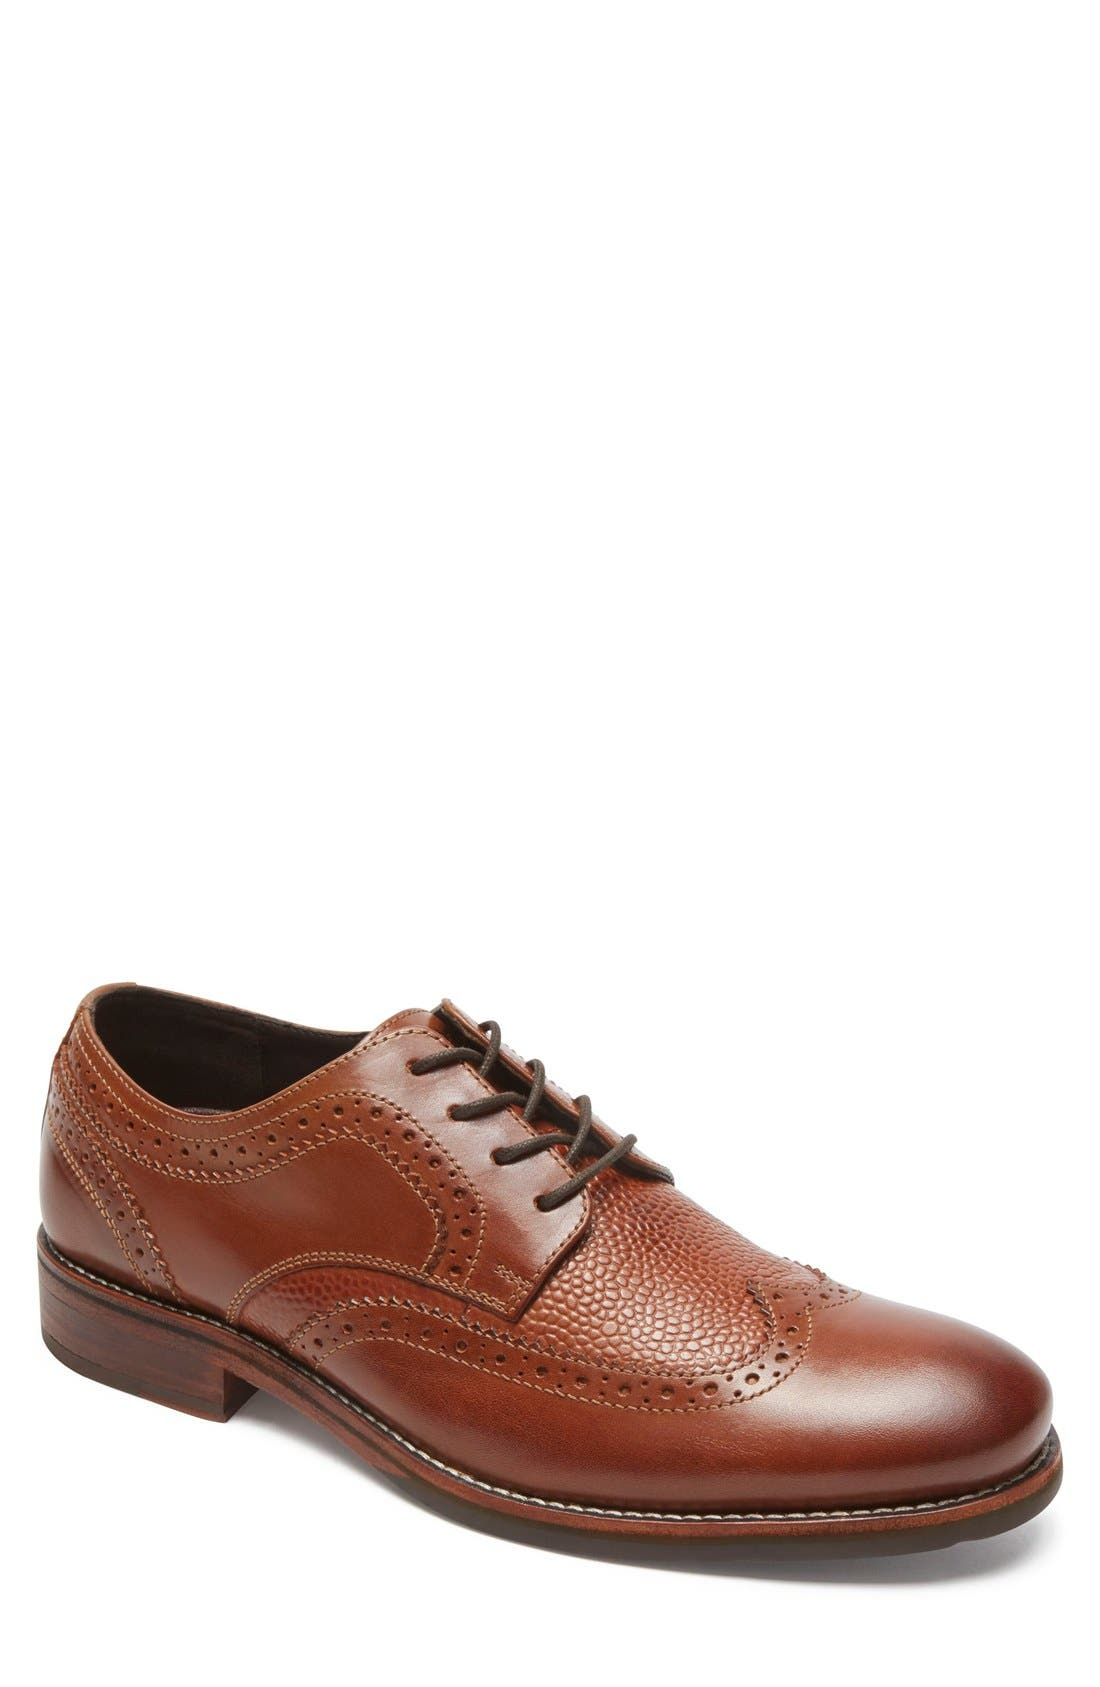 Alternate Image 1 Selected - Rockport Wyat Wingtip (Men)